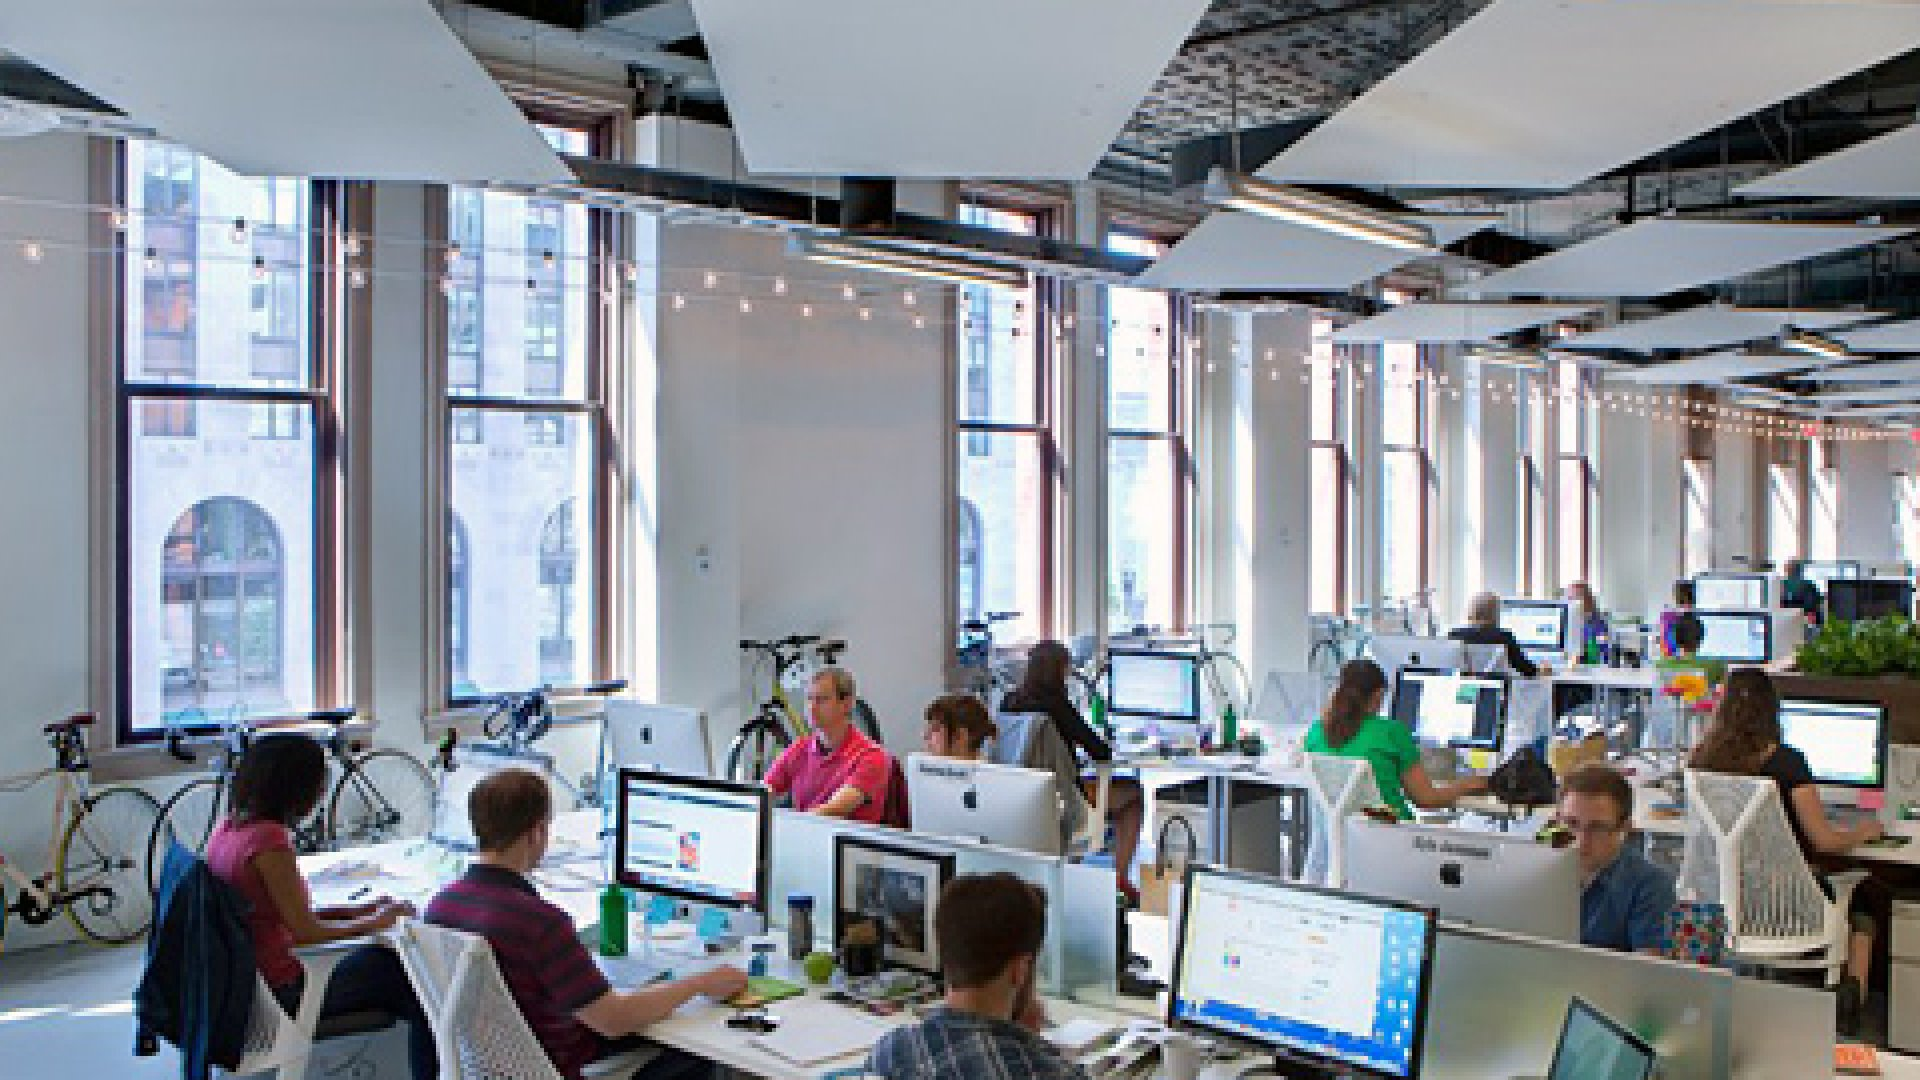 An Urban Office That Nods to History